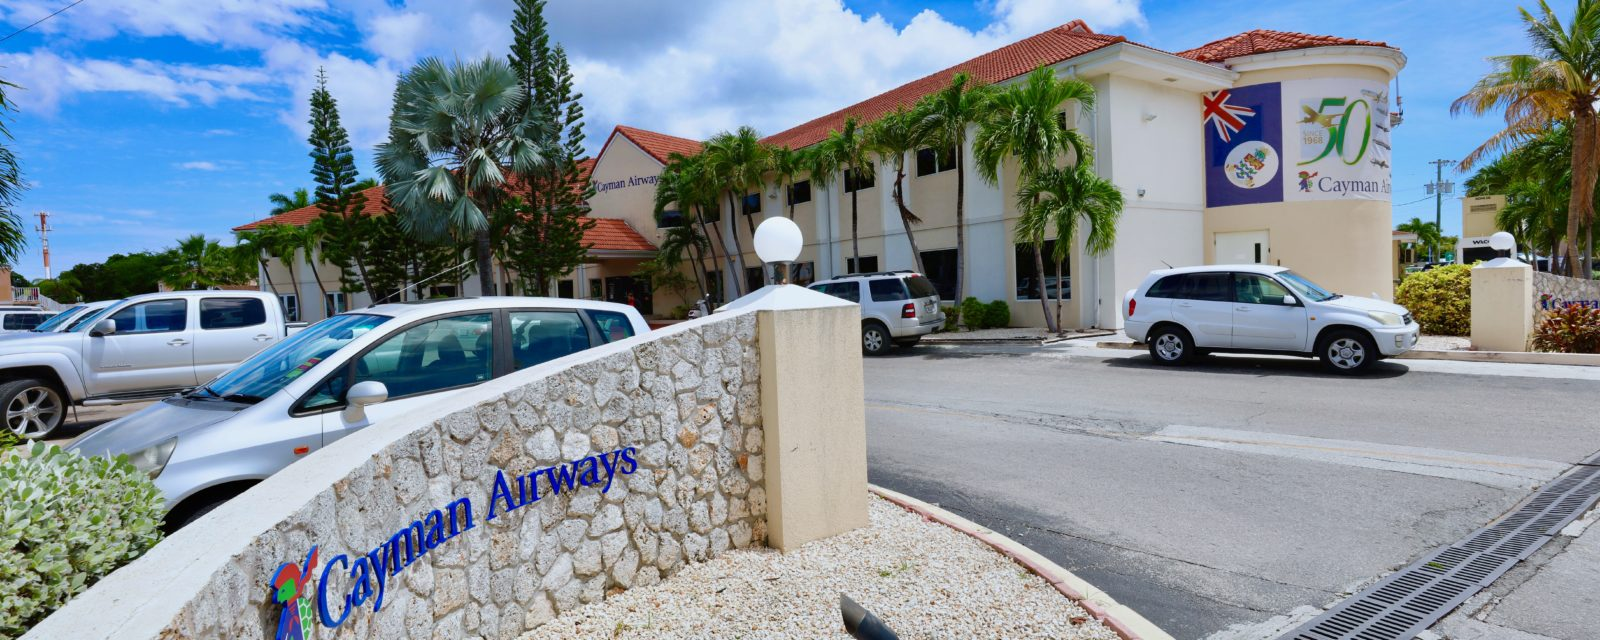 Cayman Airways Building